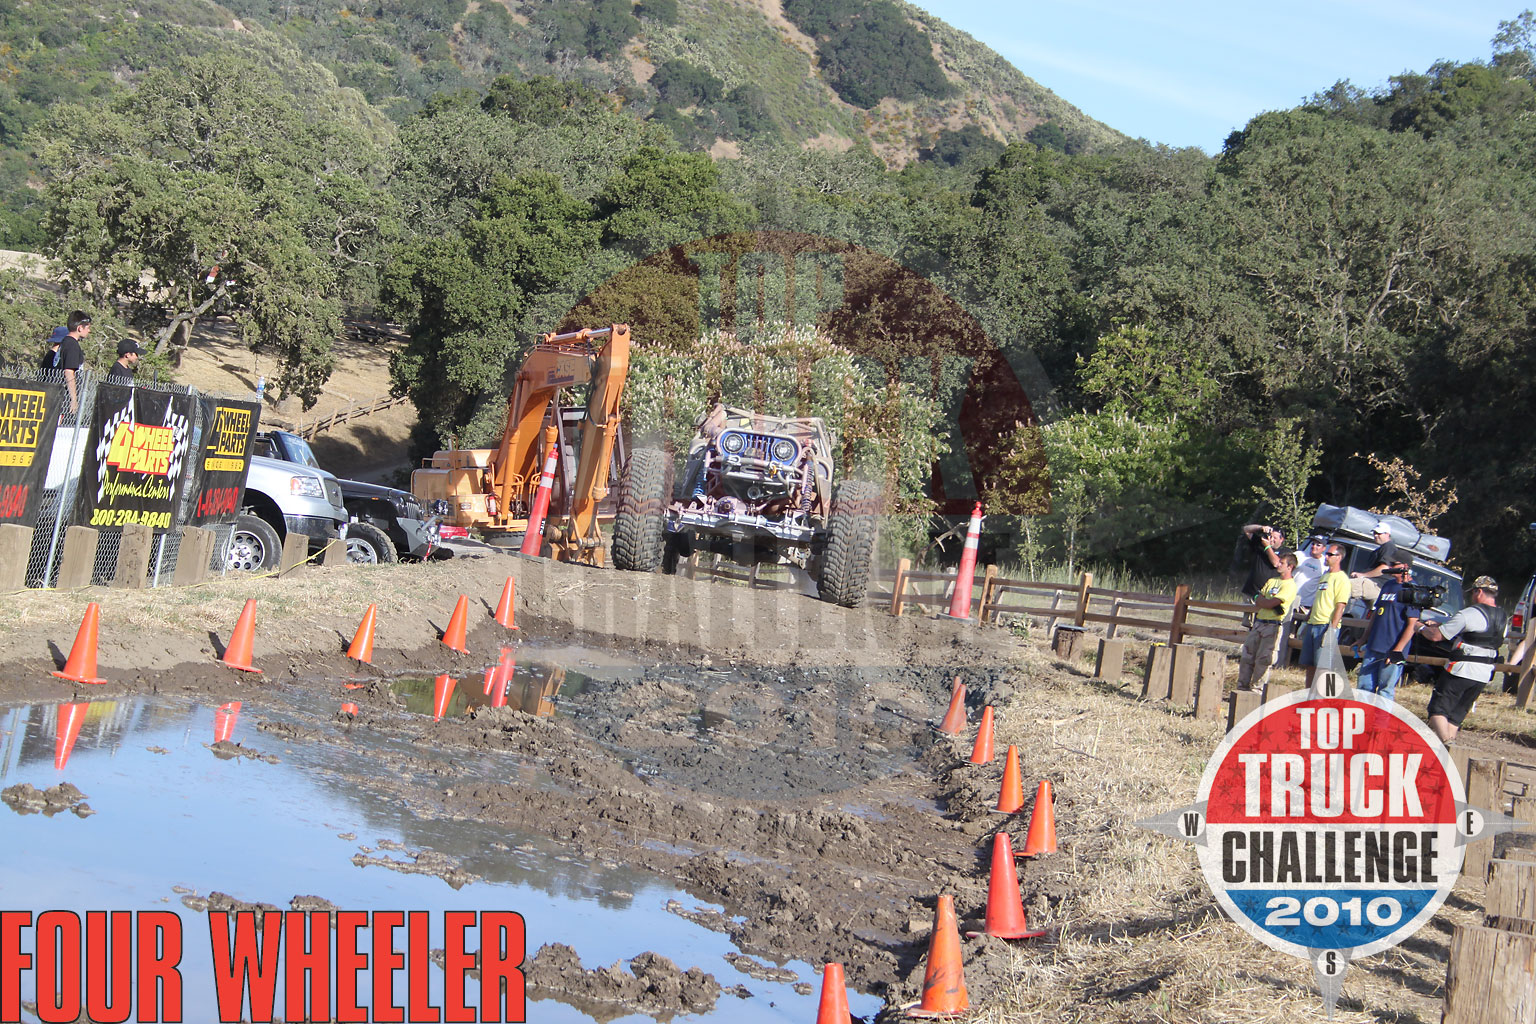 2010 Top Truck Challenge Mud Pit Joe Quichocho Tube Chassis Cj7 Buggy